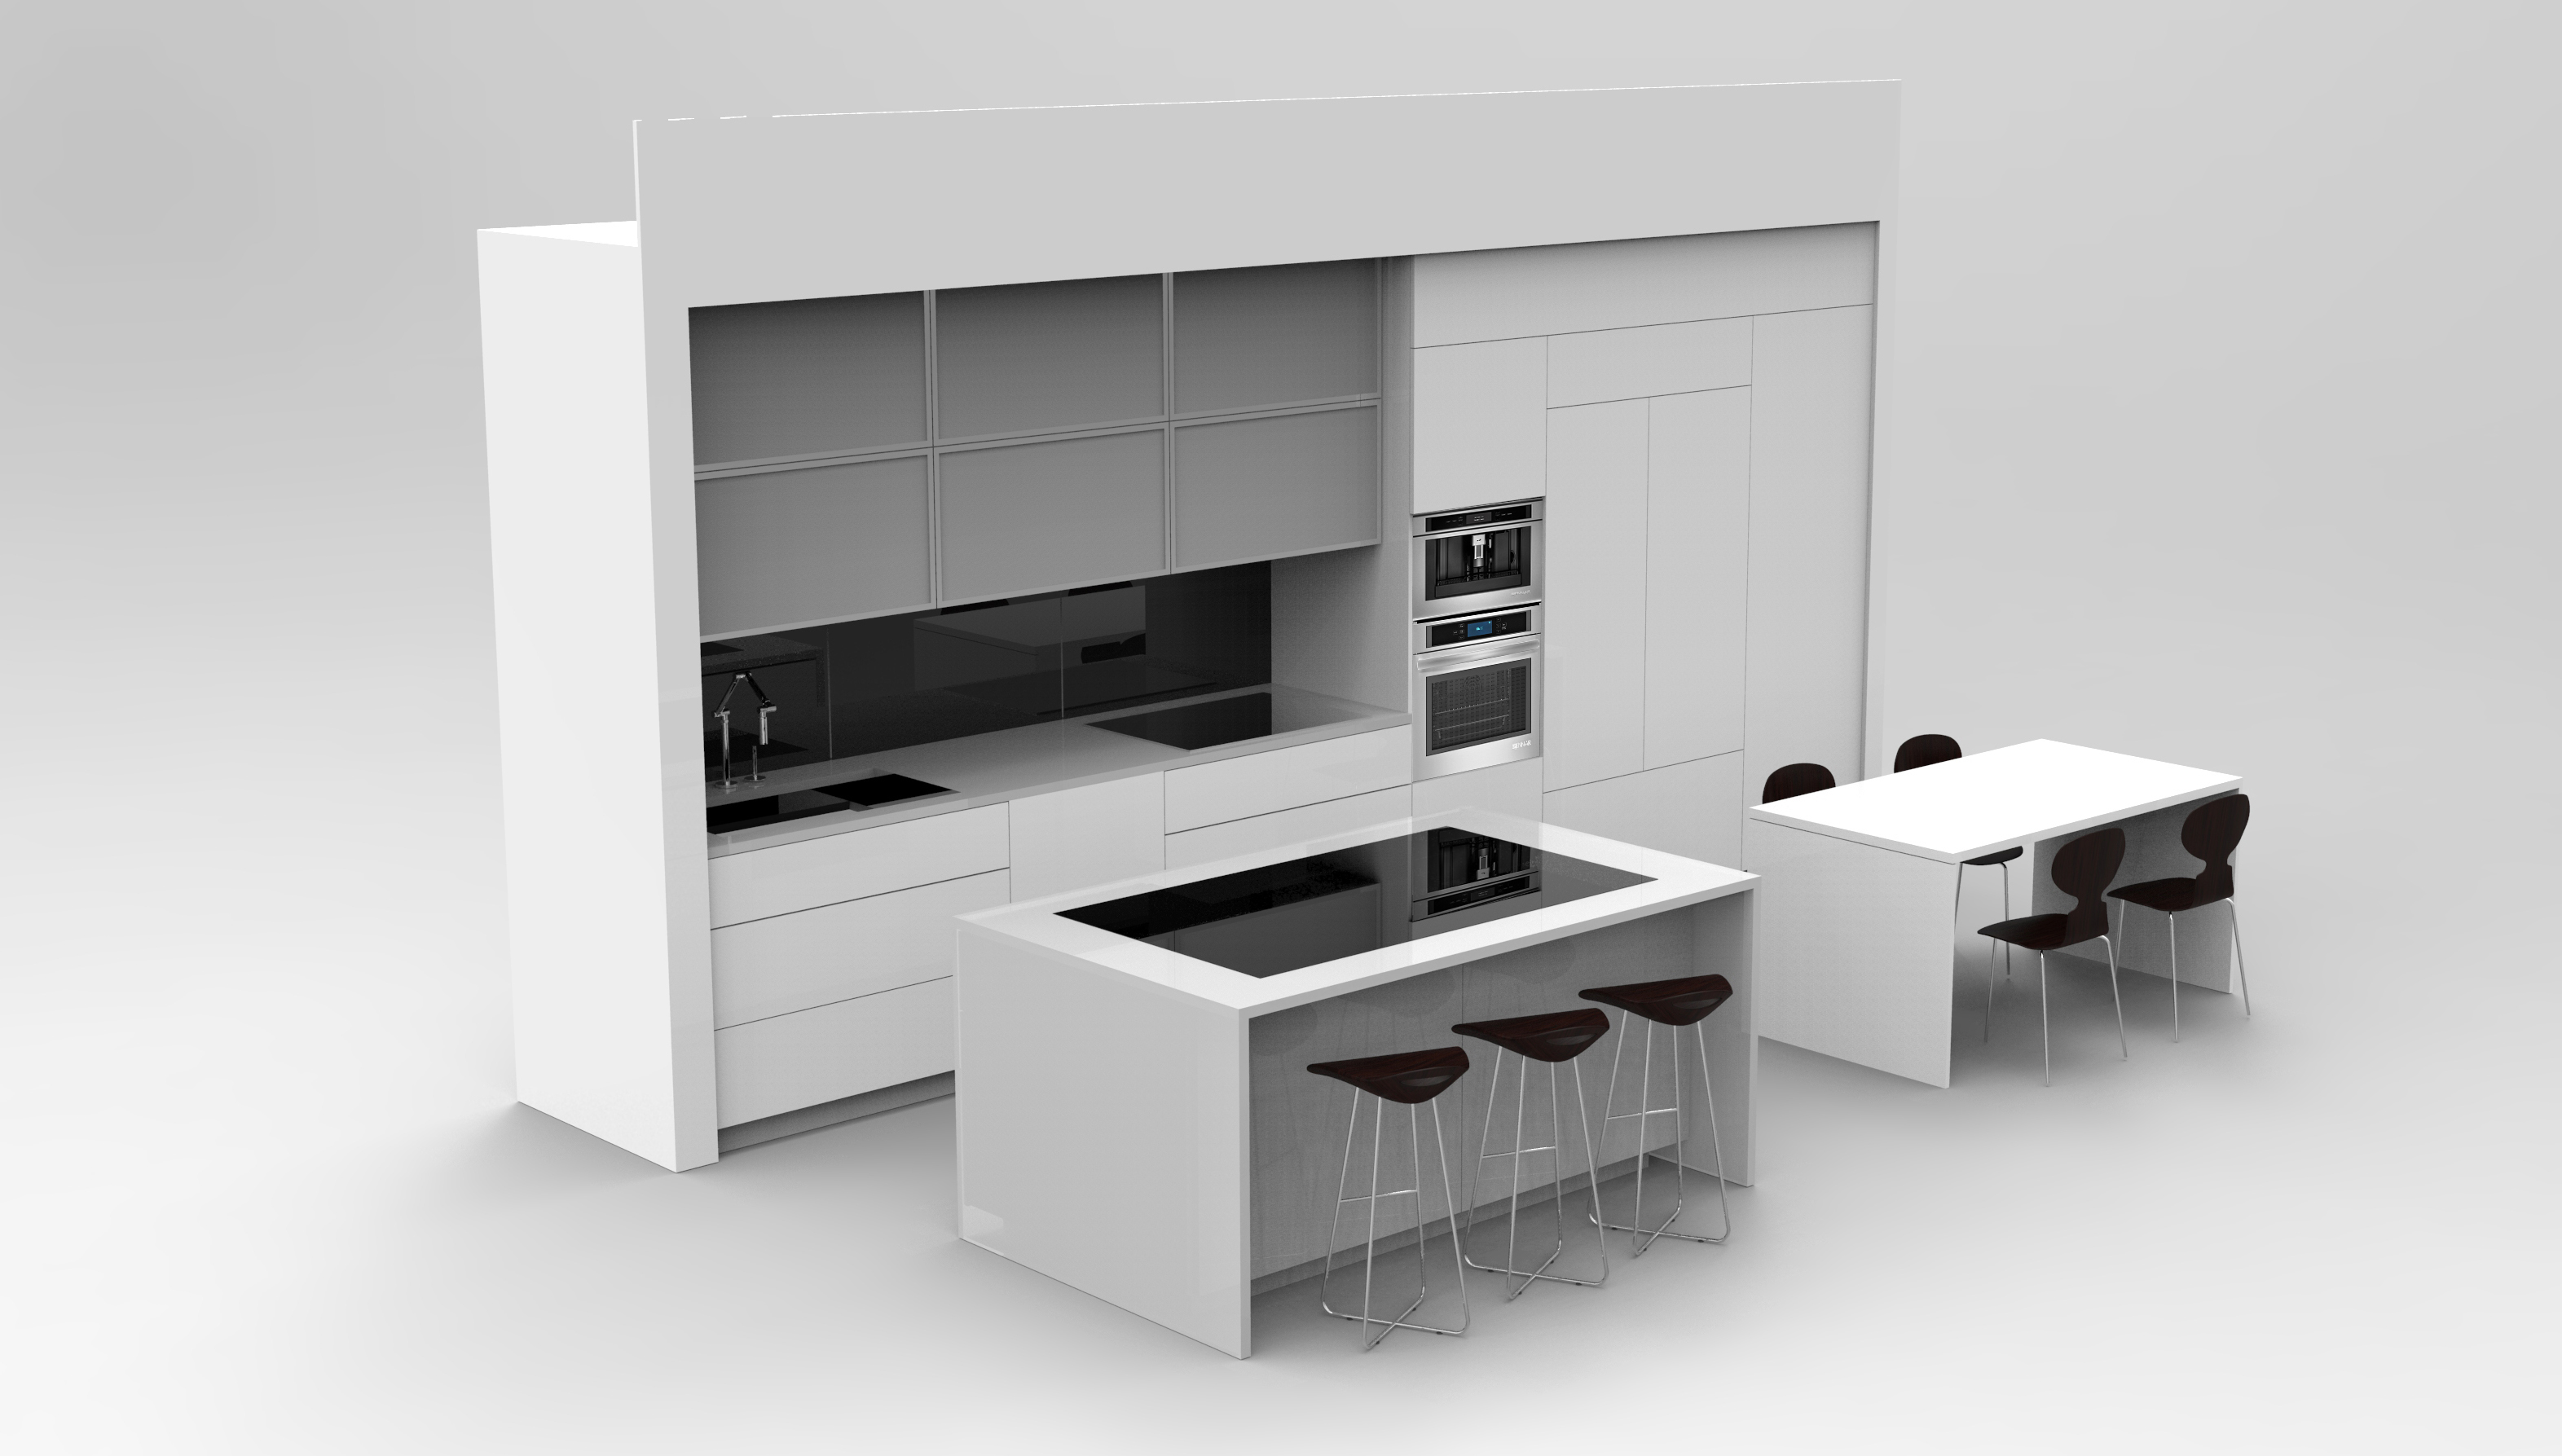 The Kitchen of the Future is the first phase of the FutureHAUS project.